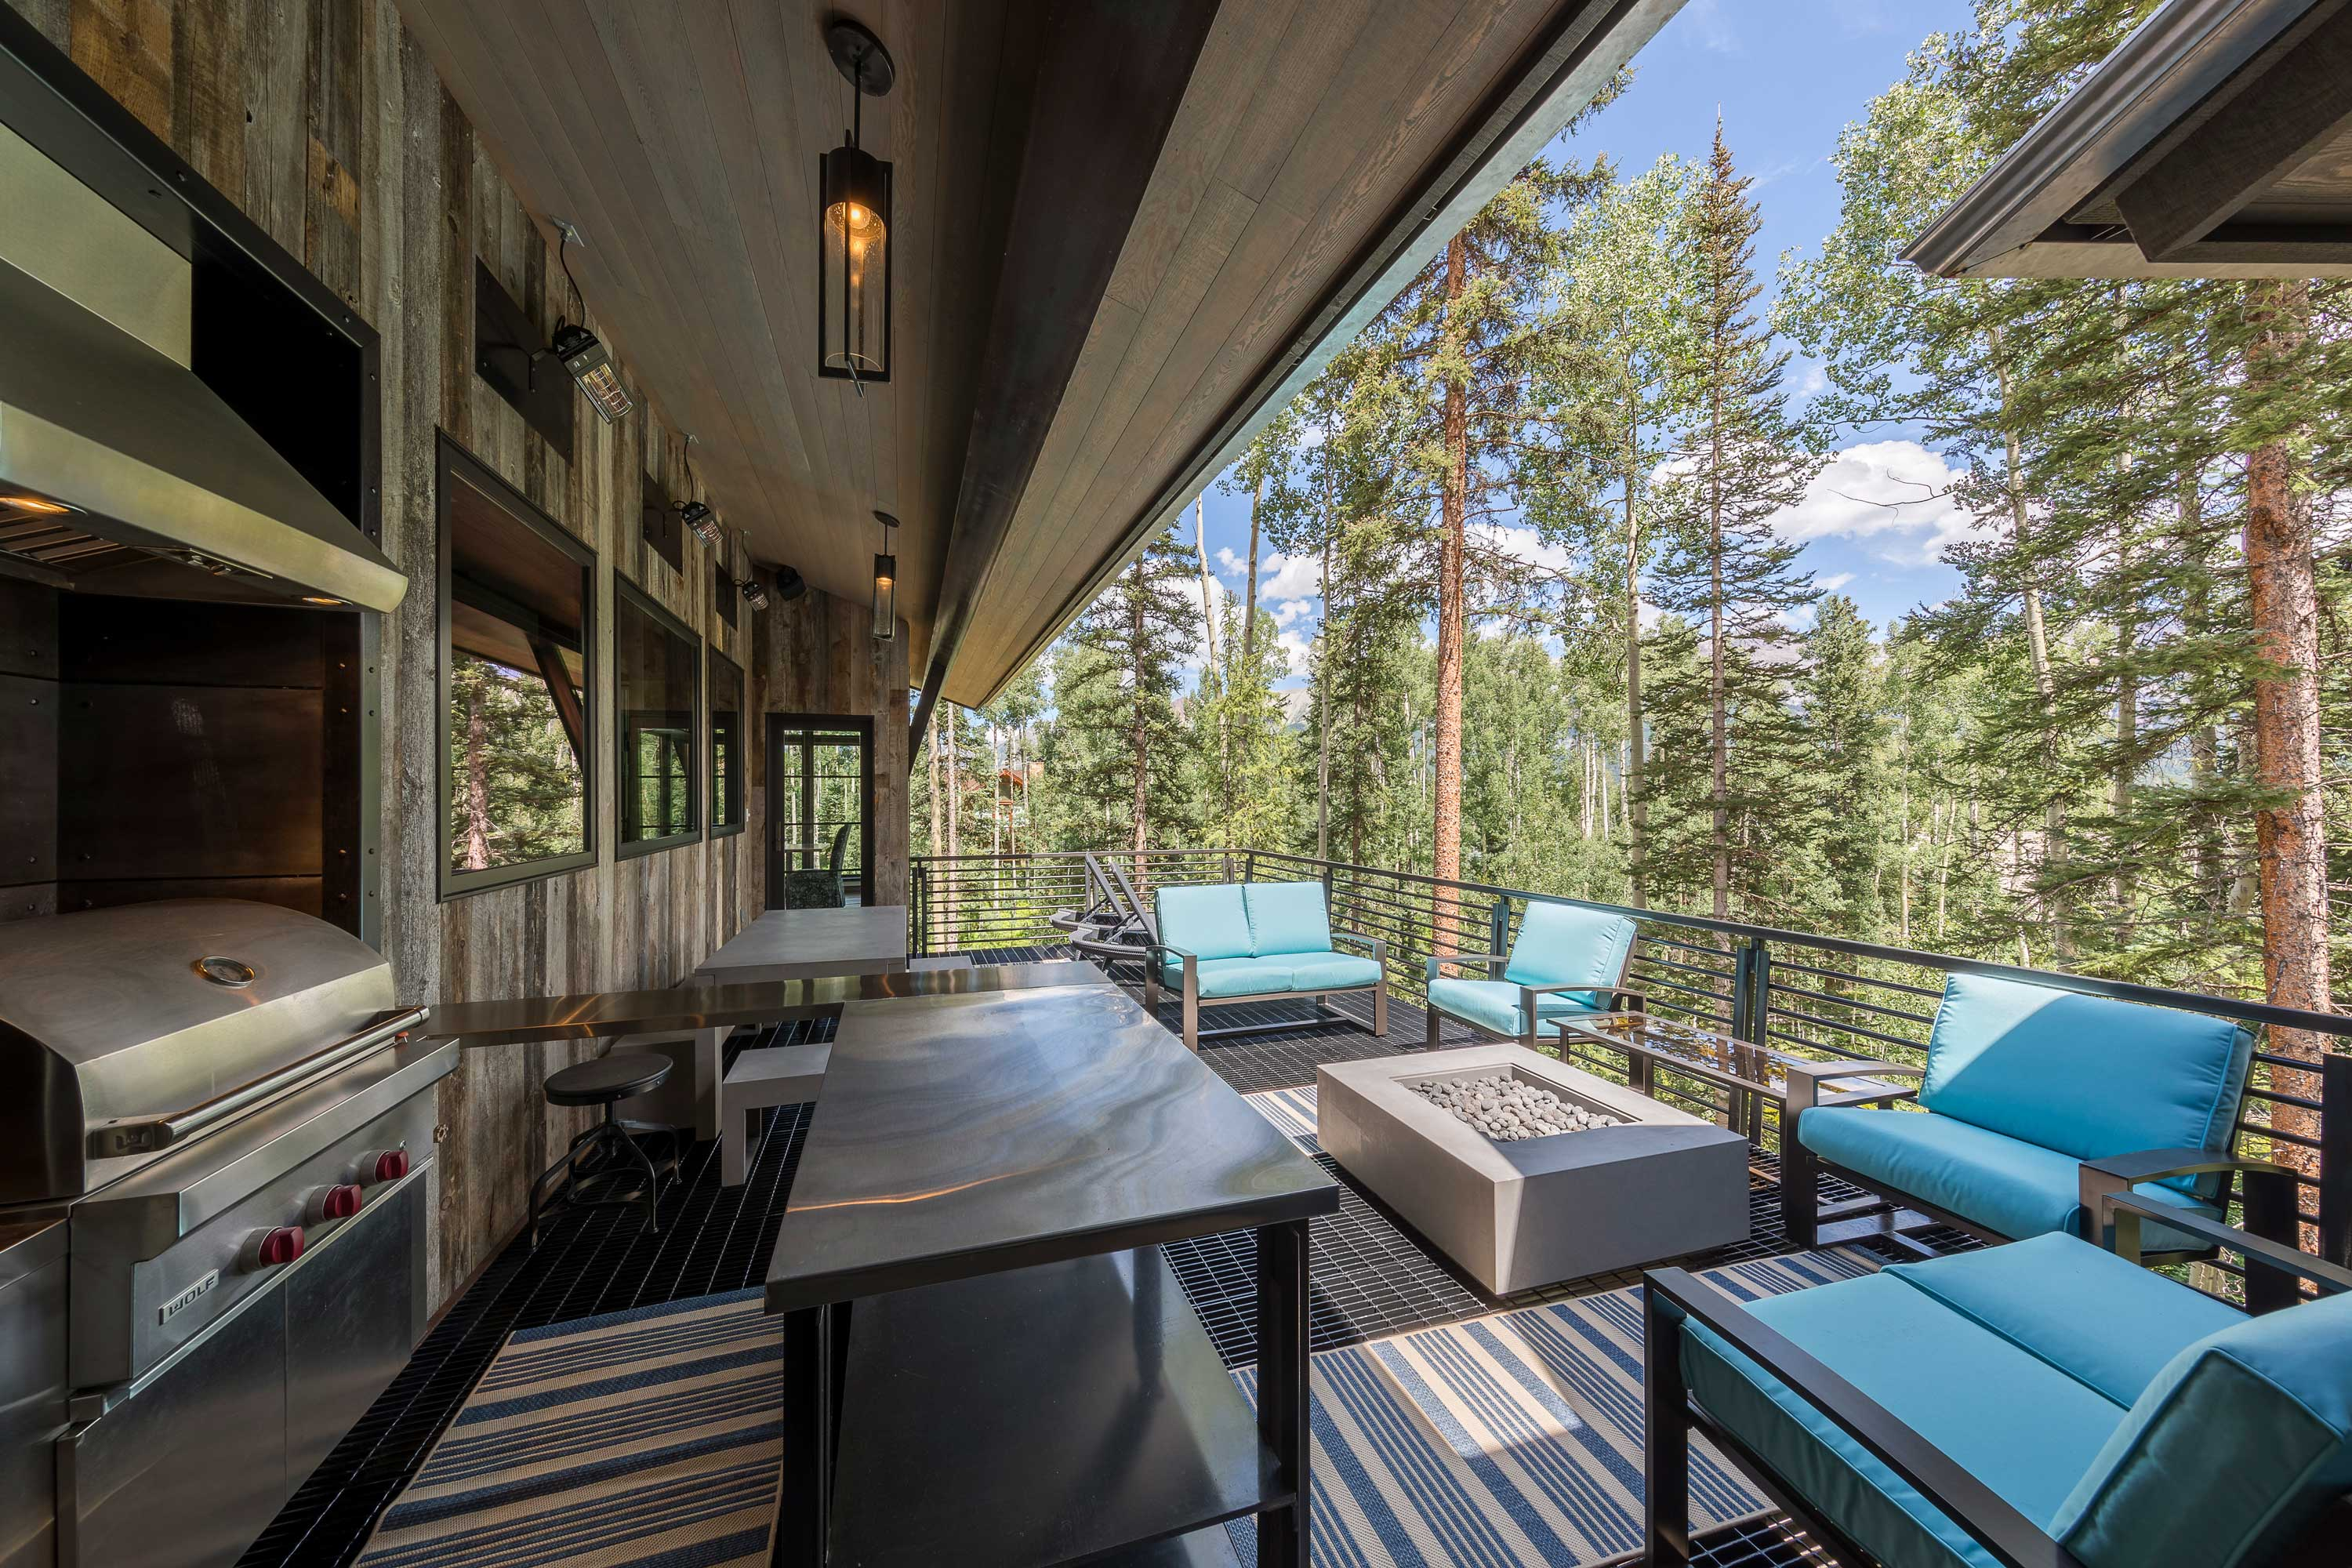 This luxurious home in Telluride Ski Resort was designed to take in views of pristine pine forests and the soaring peaks of the San Sophia range.